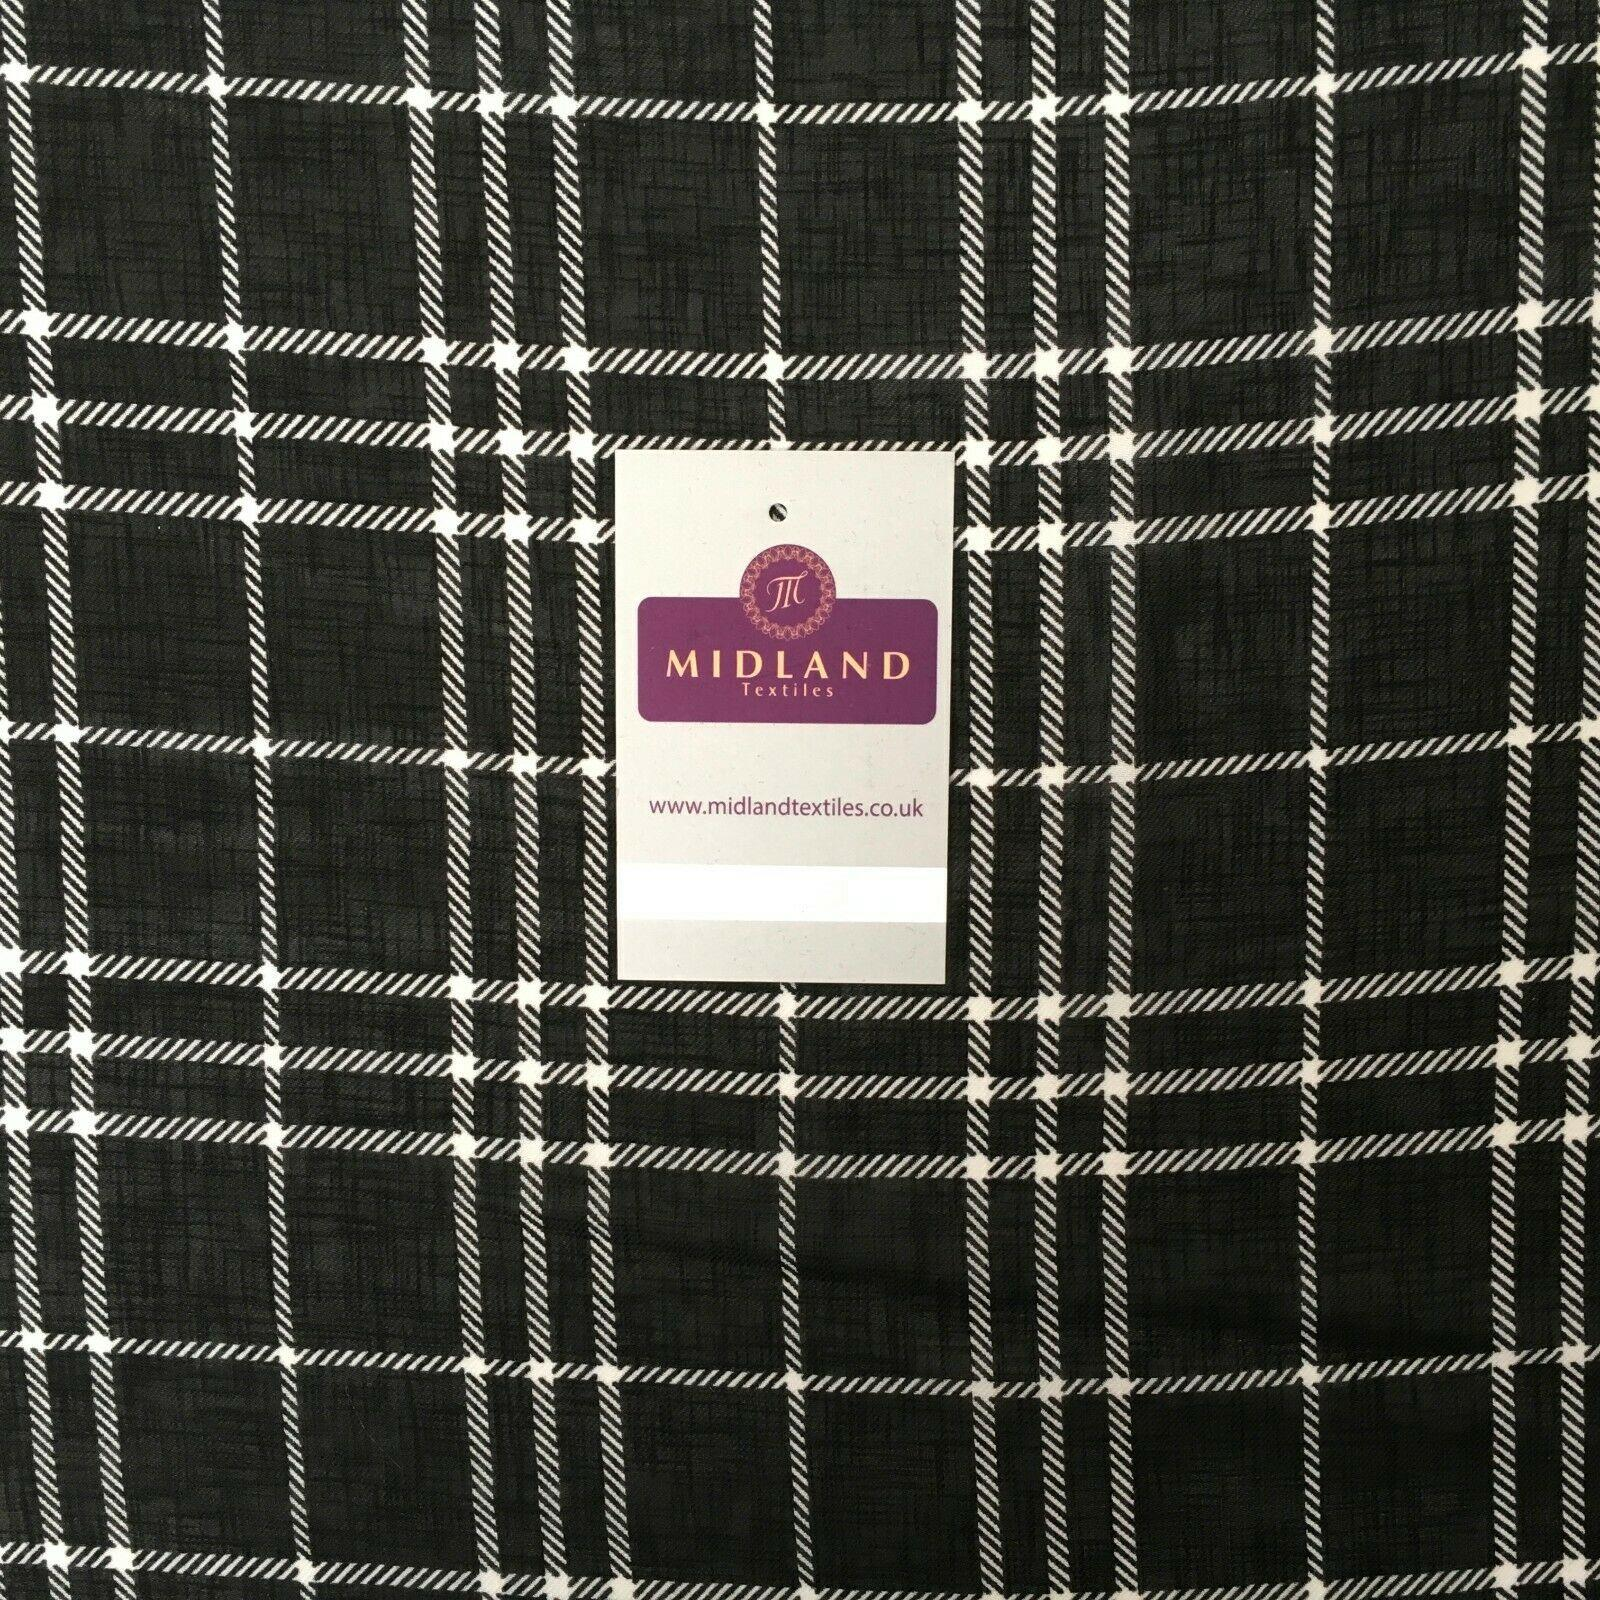 Black tartan check Georgette crepe Linen effect dress Fabric 150cm wide MK1095-8